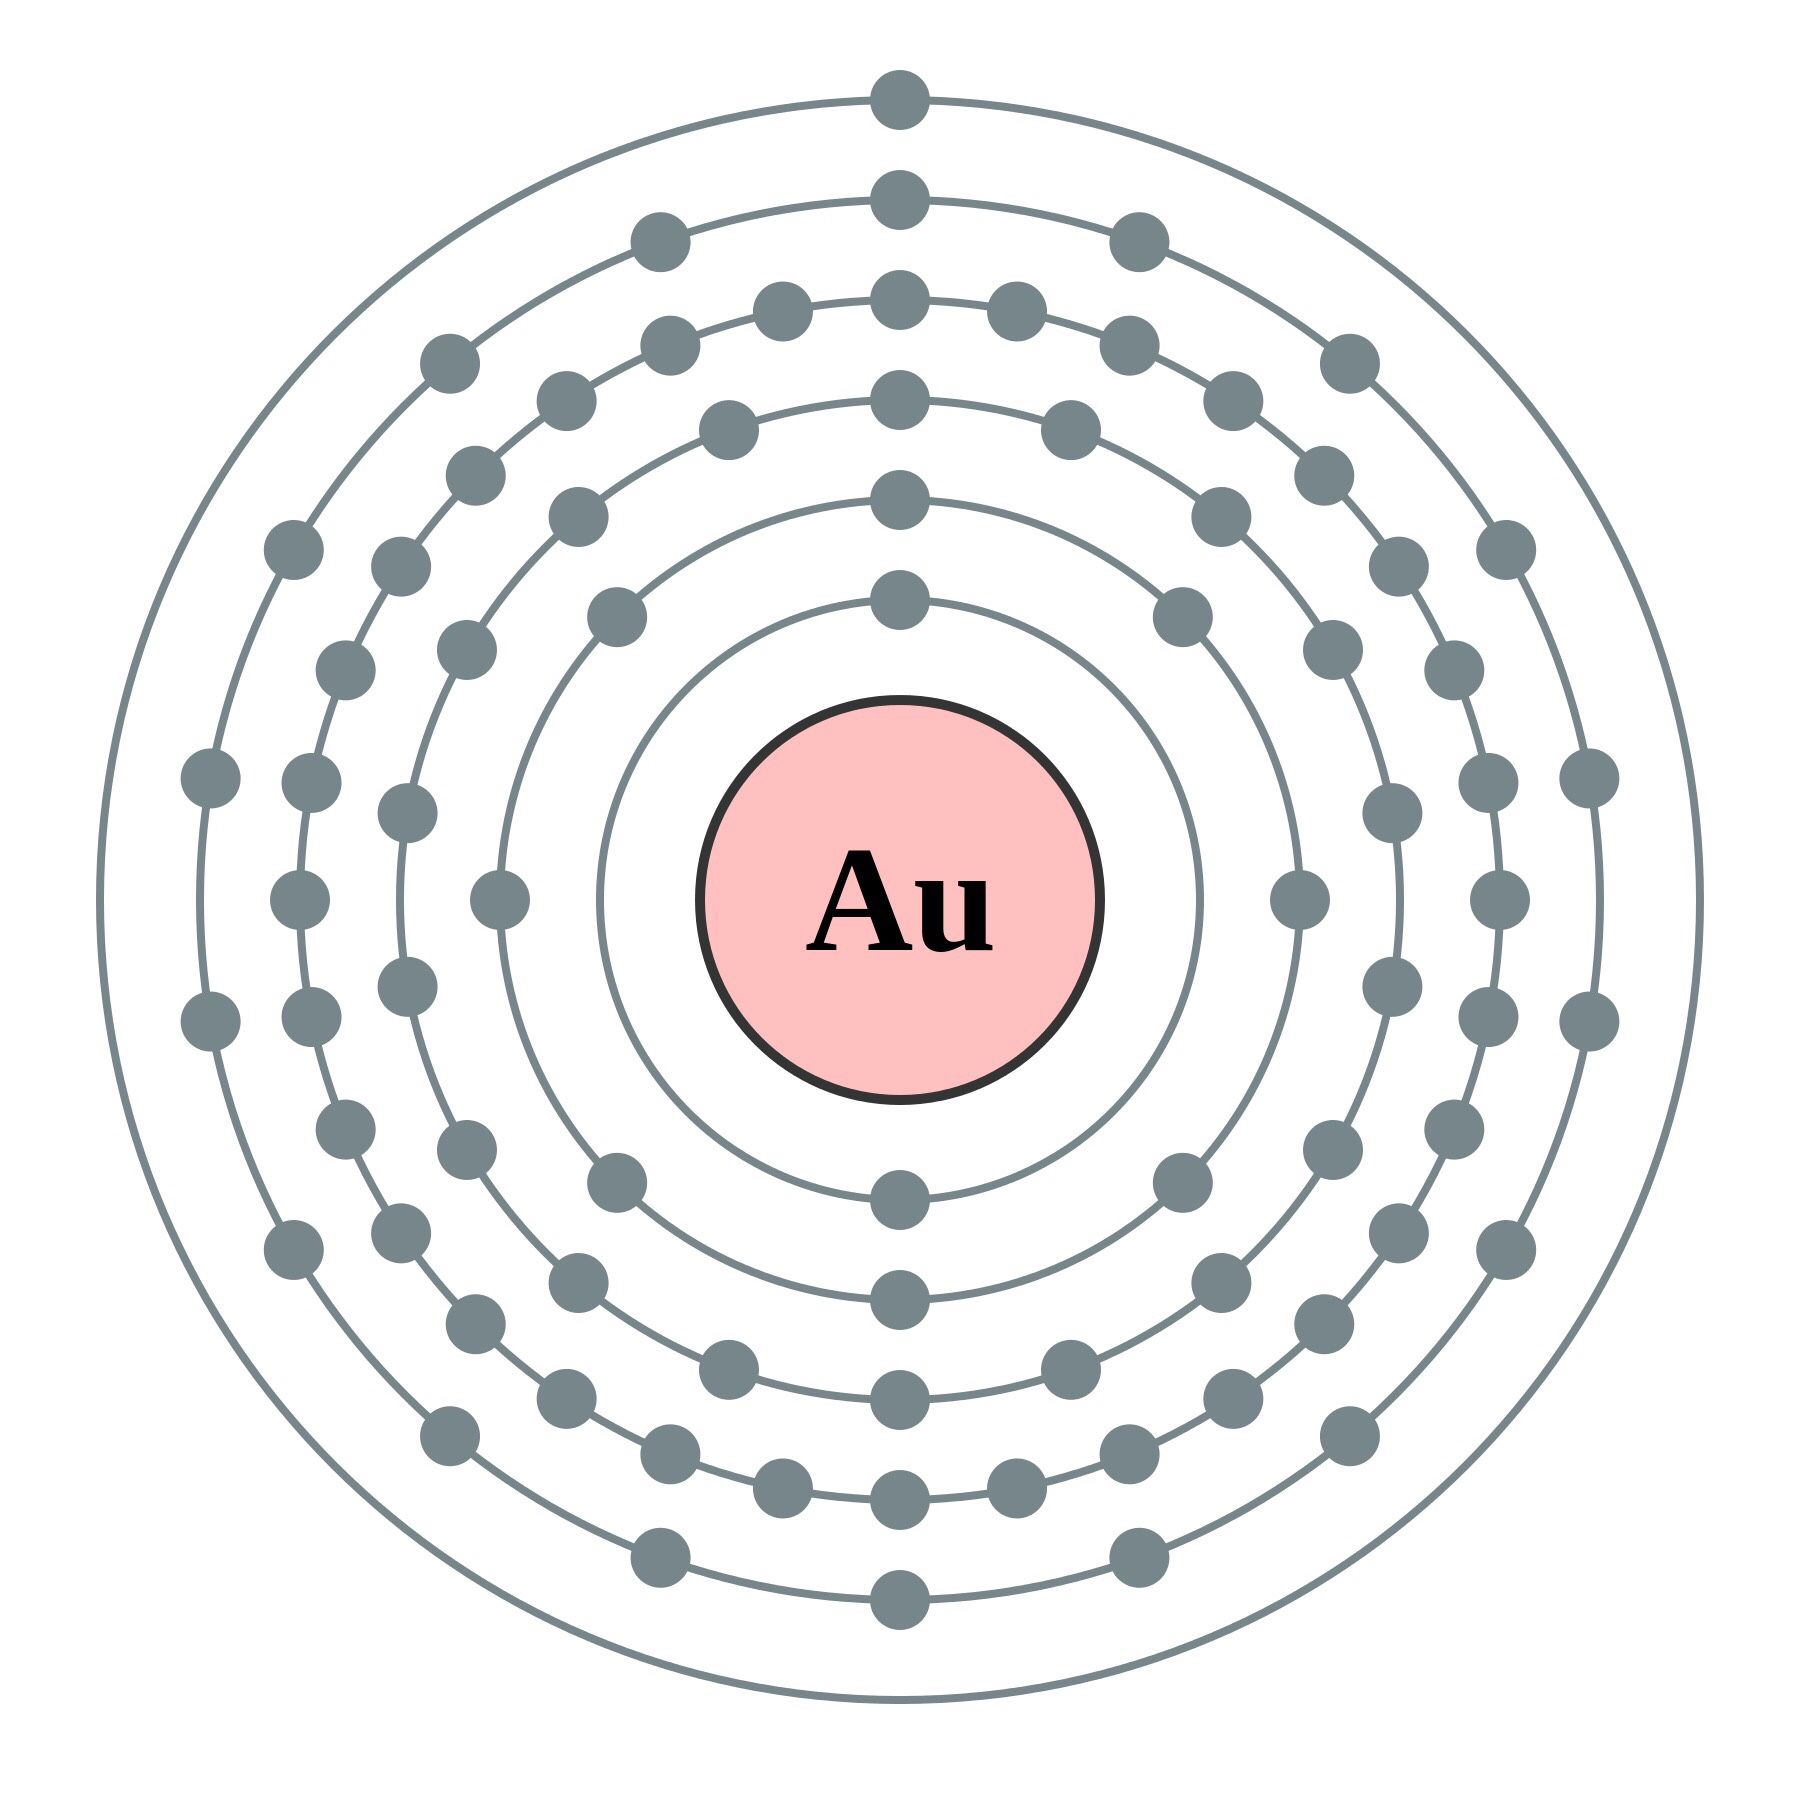 This is pure gold Electron configuration, Atom diagram